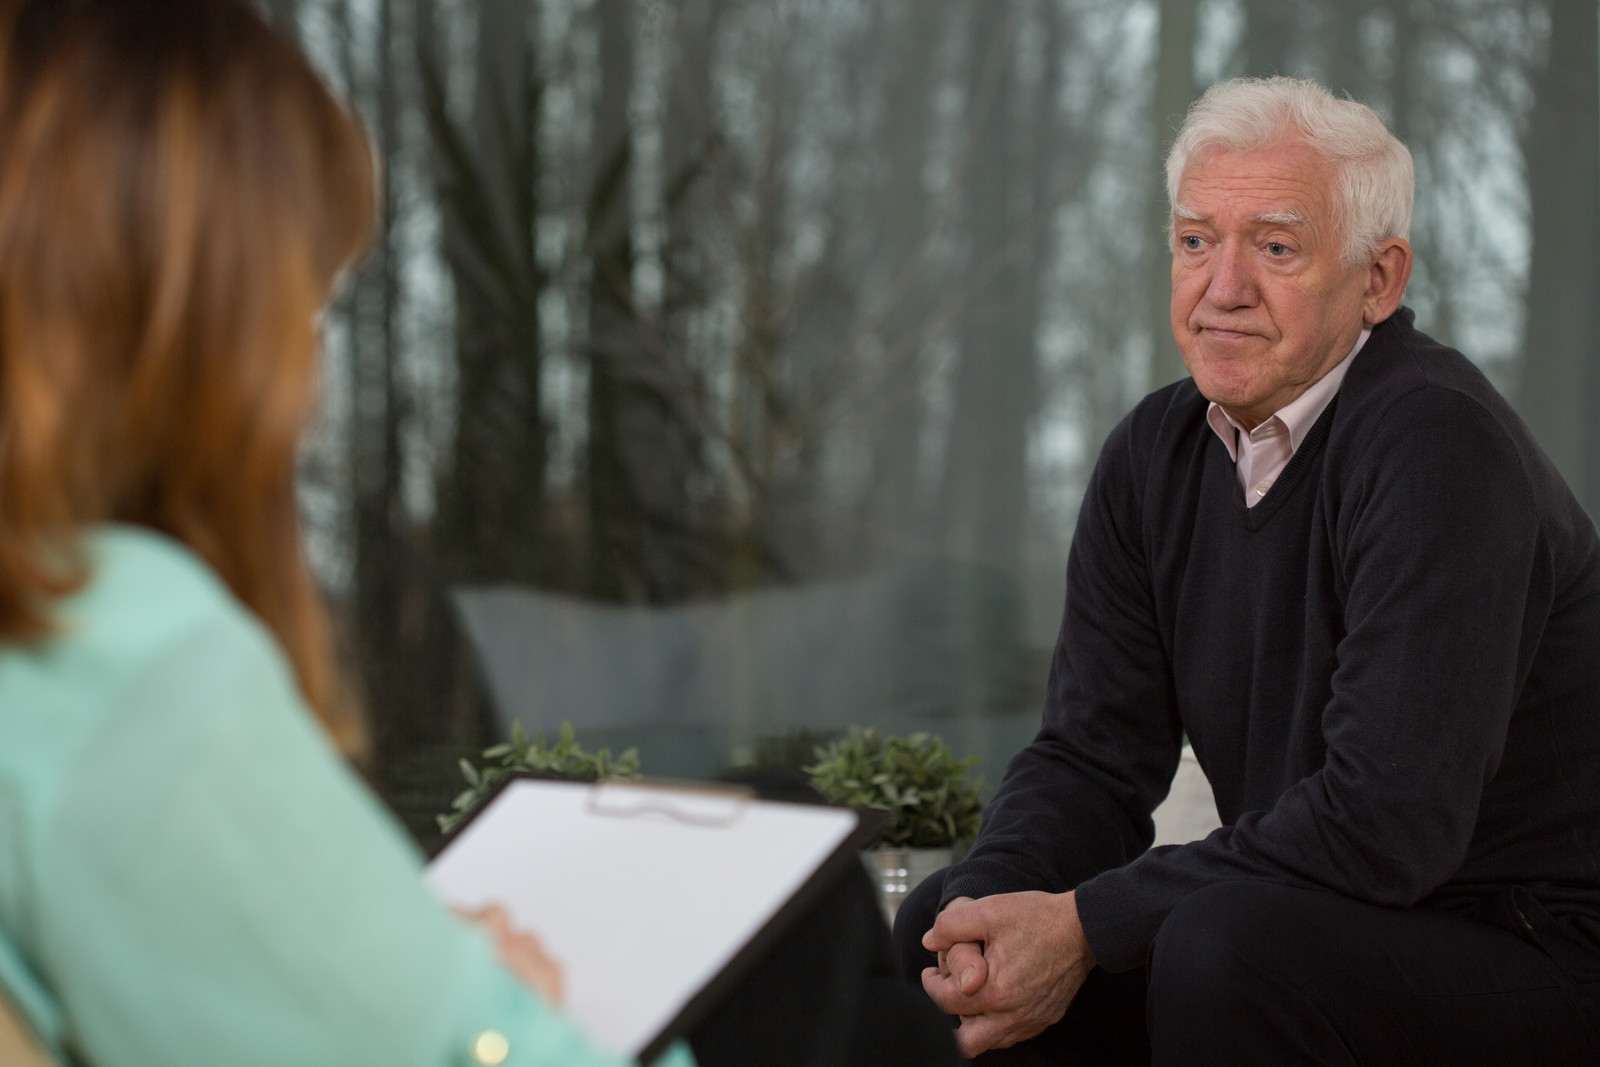 Senior man in talk therapy with a female therapist